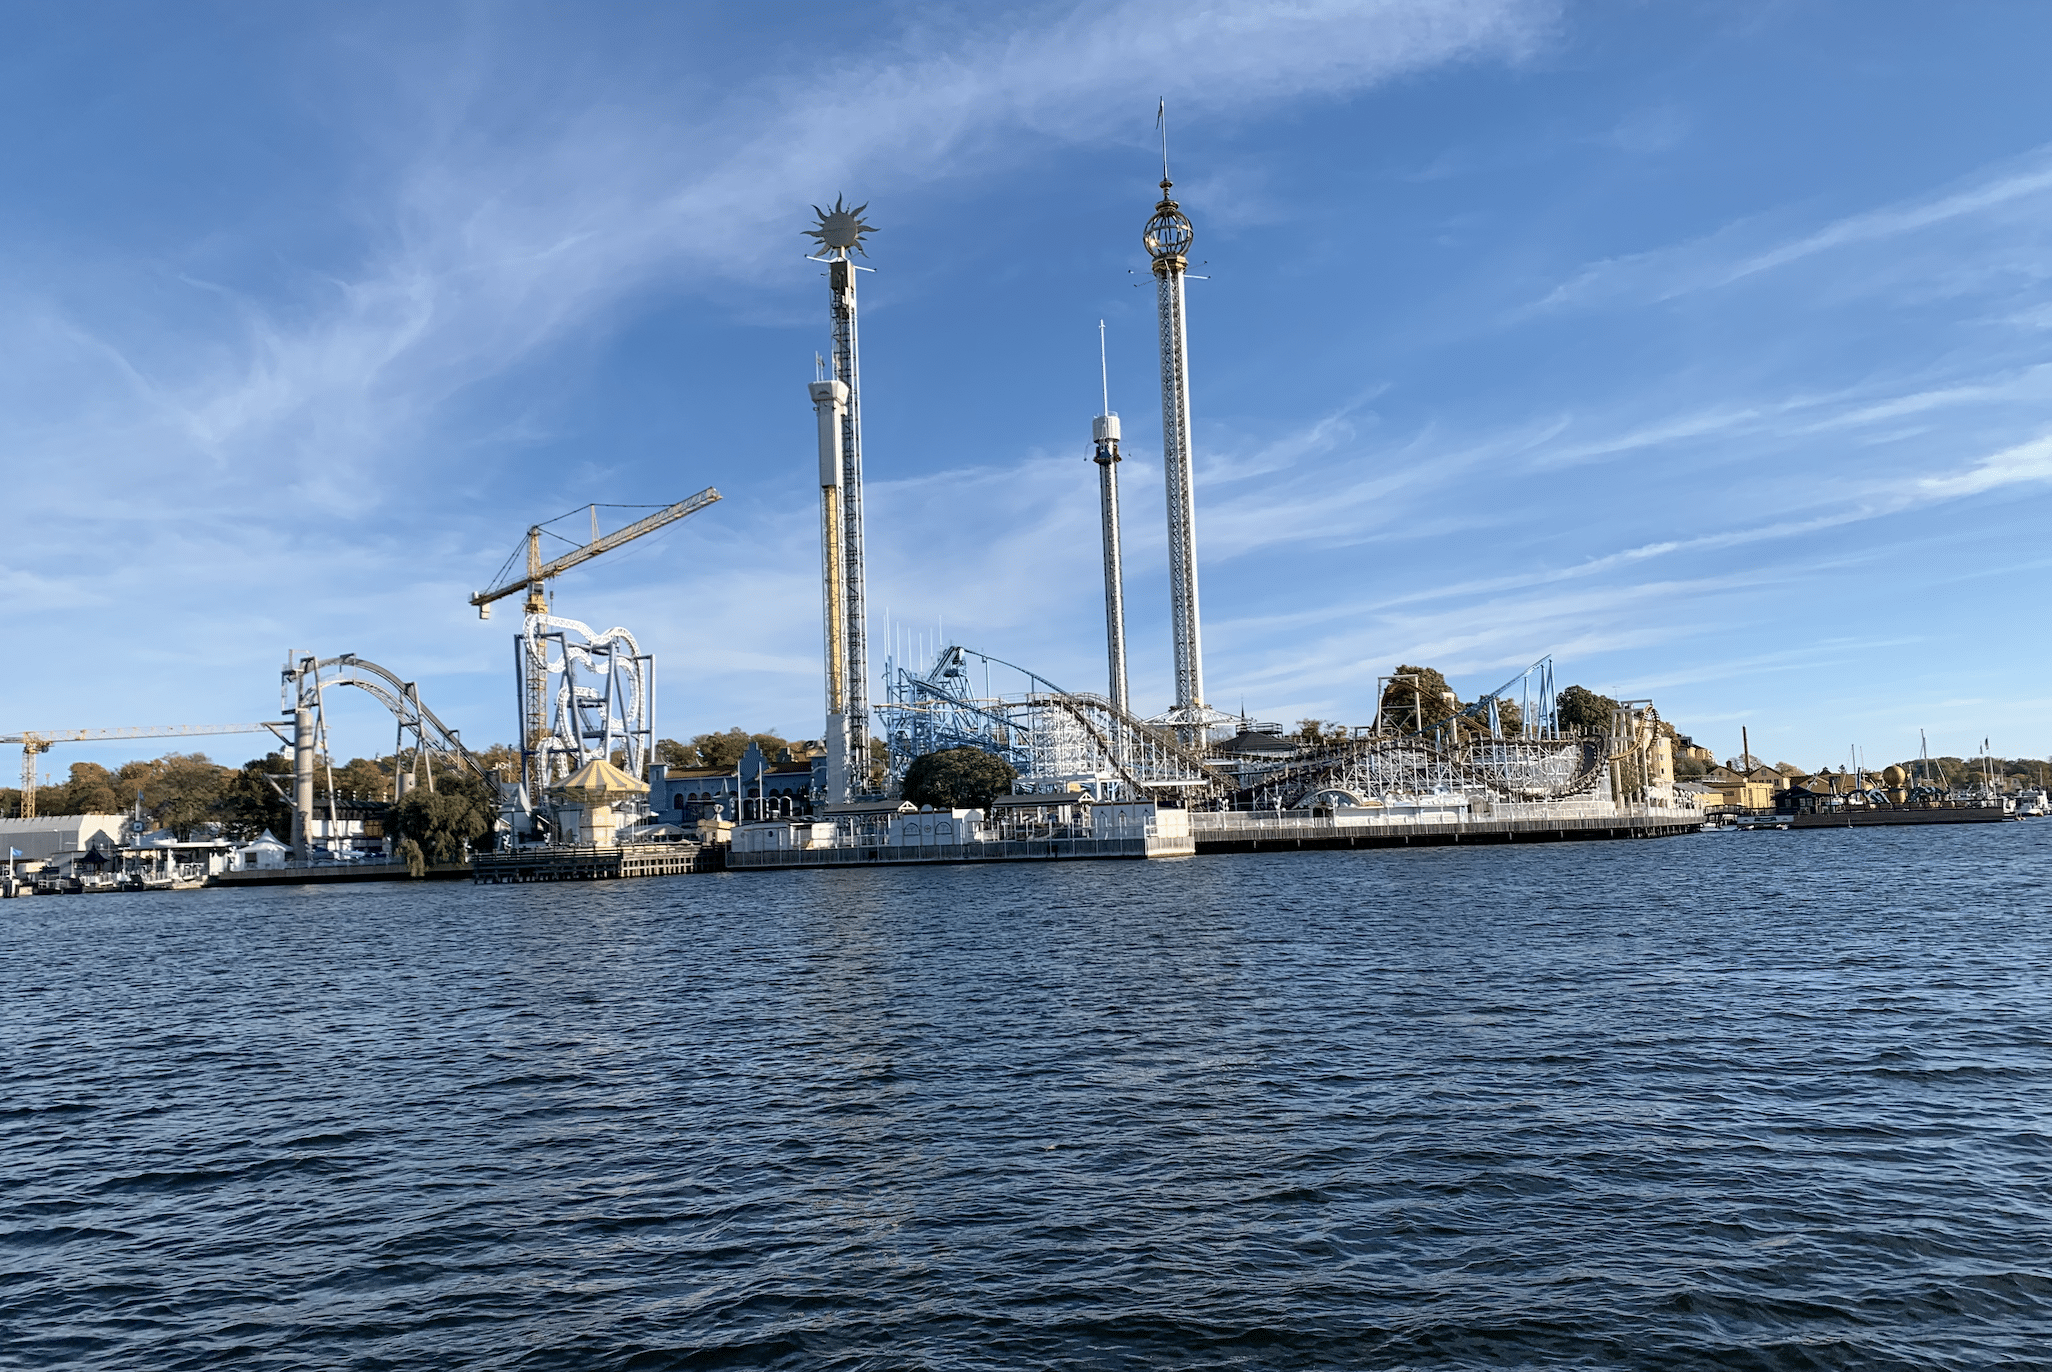 le parc d'attractions grona lund a stockholm